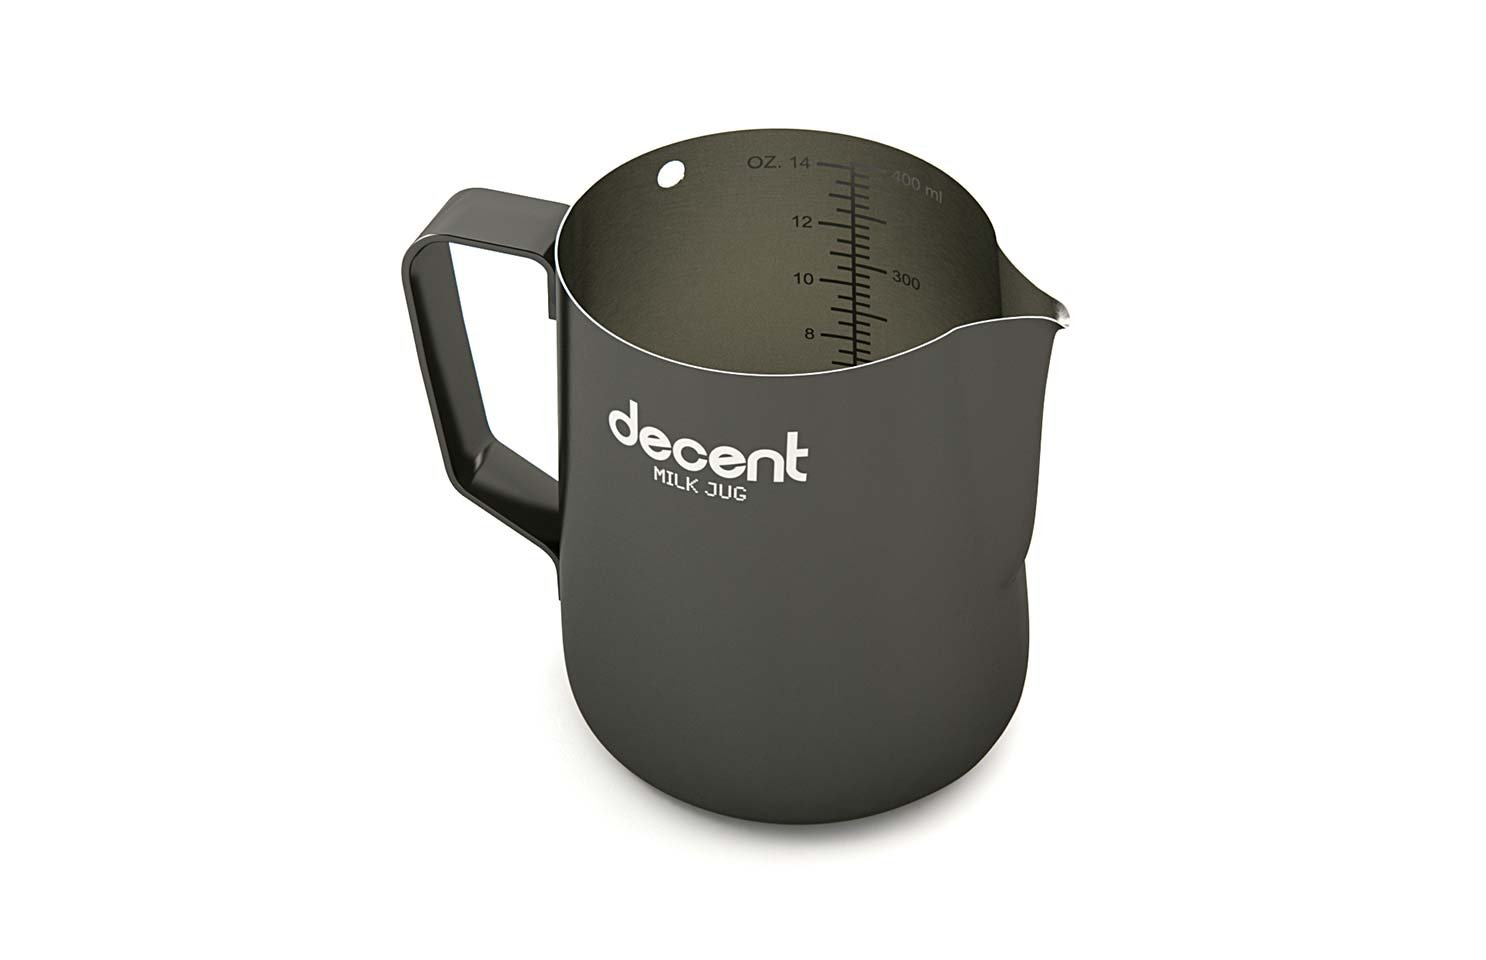 Milk Jug with classic spout (350ml with thermometer hole) by Decent Espresso